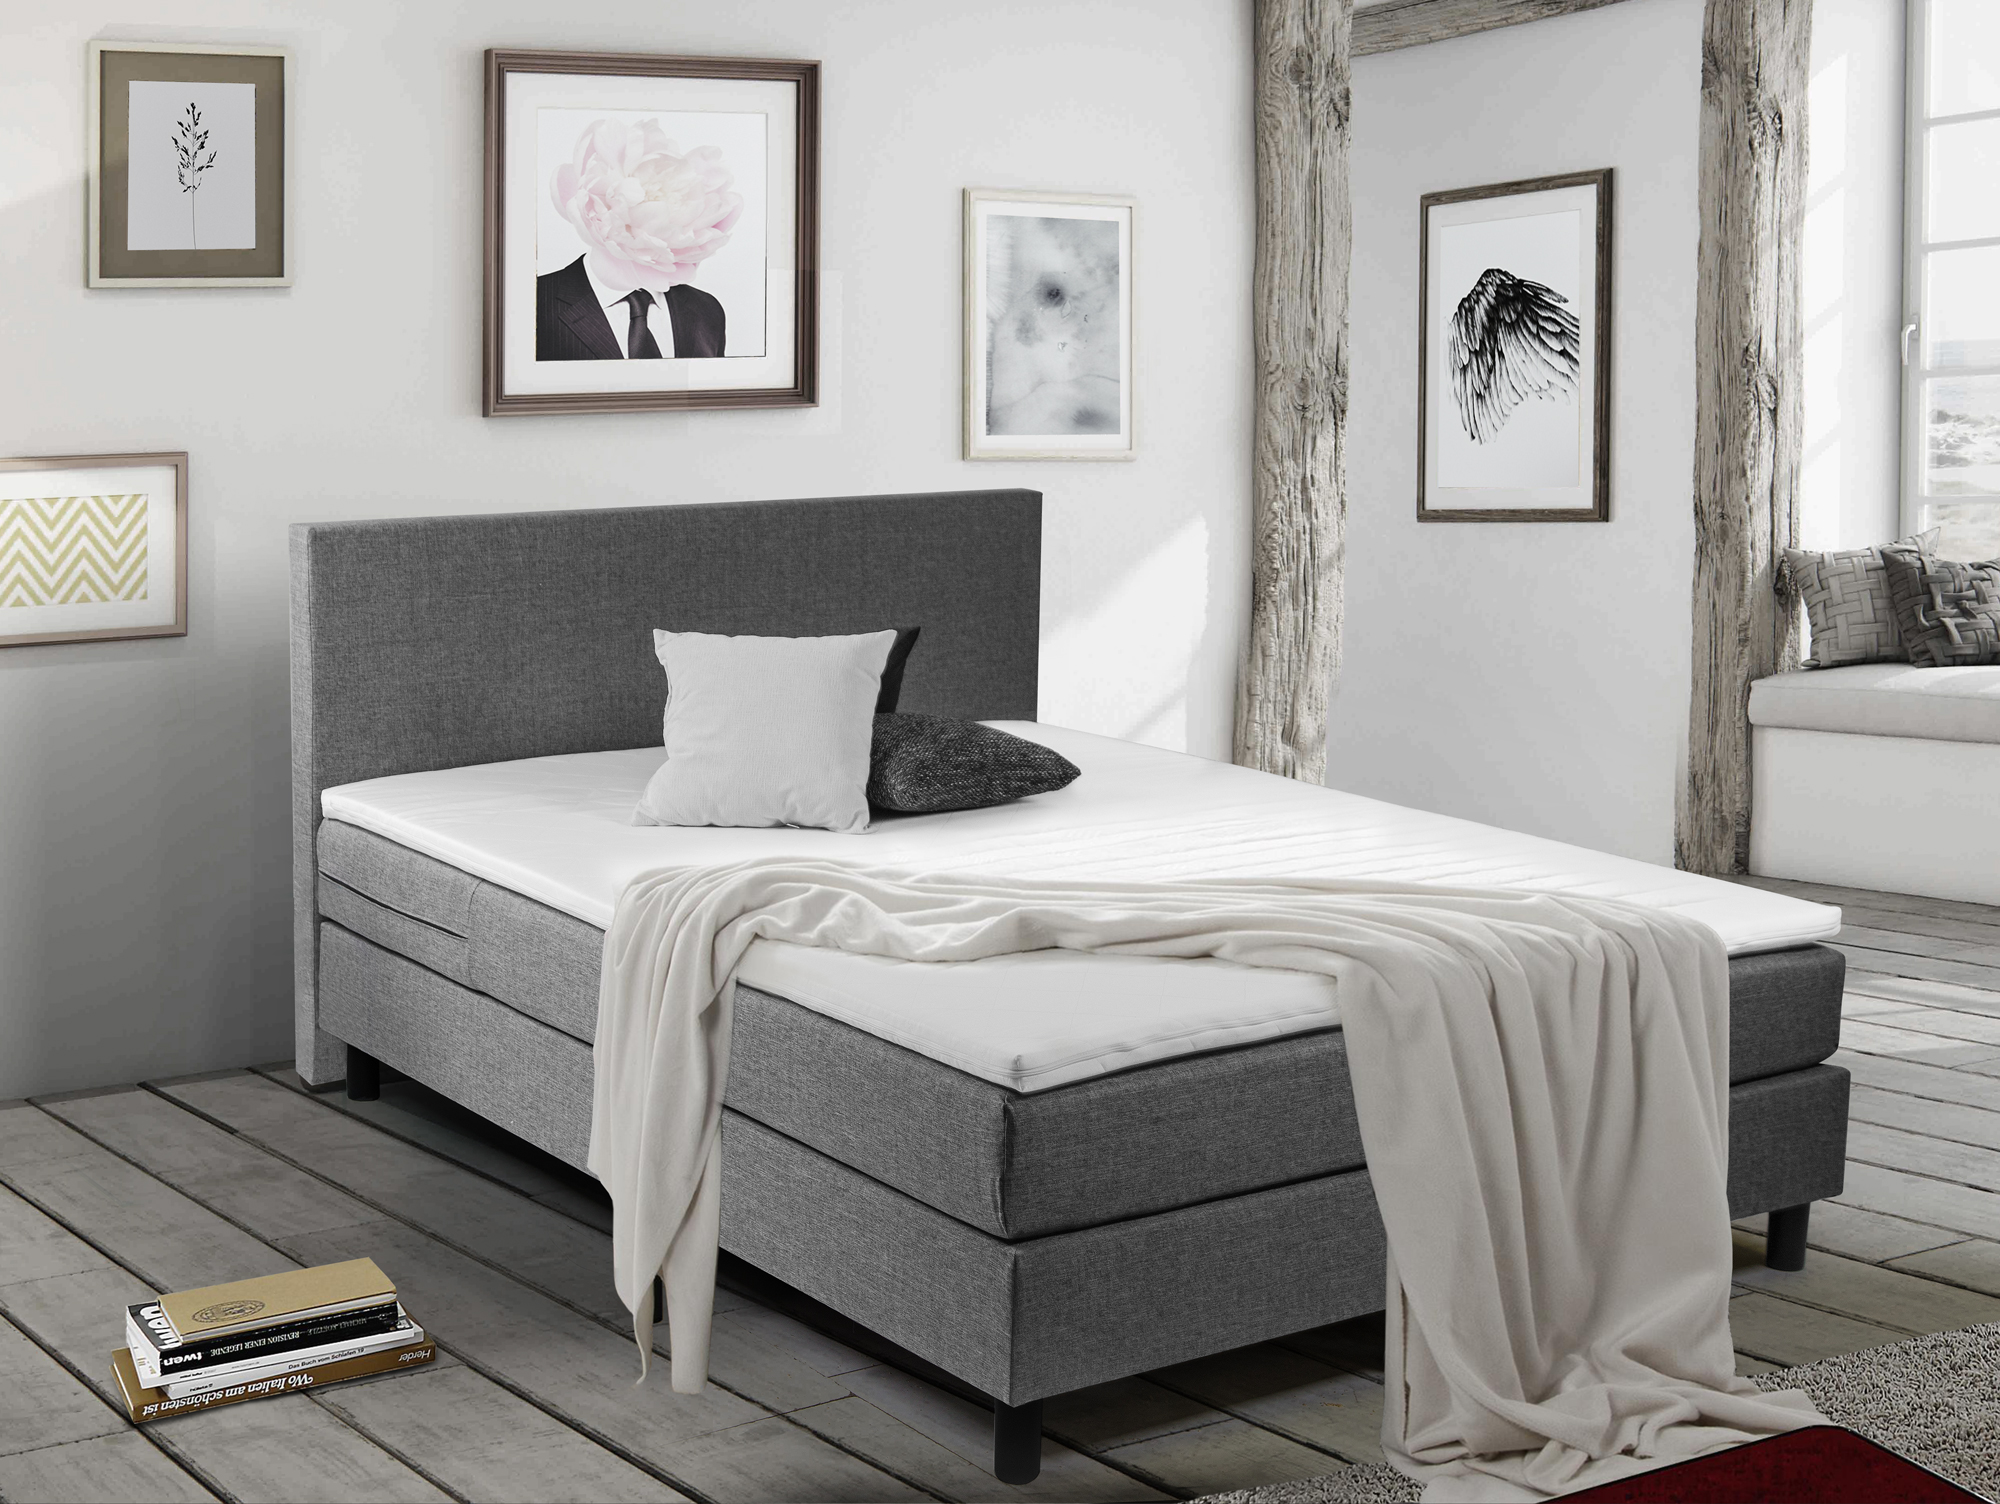 balu boxspringbett polsterbett 180 x 200 cm grau. Black Bedroom Furniture Sets. Home Design Ideas